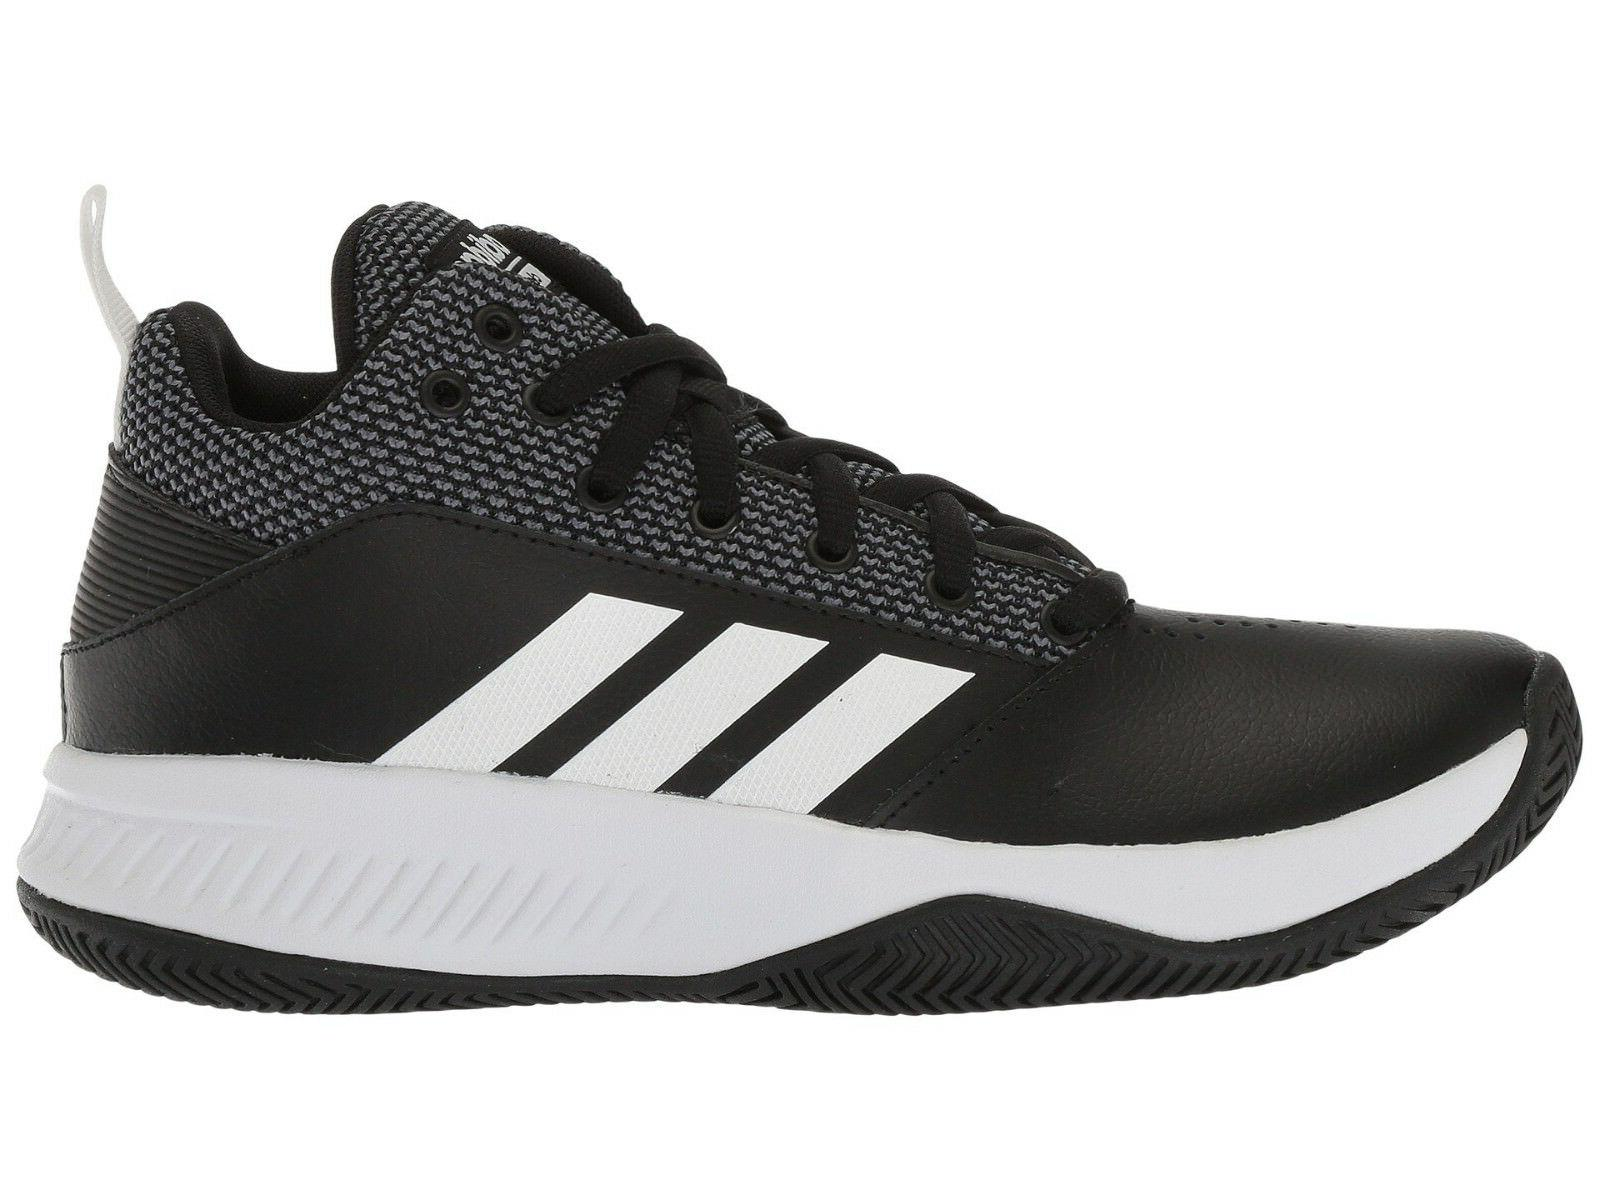 Men Adidas ILation Basketball Shoes DA9847 Black